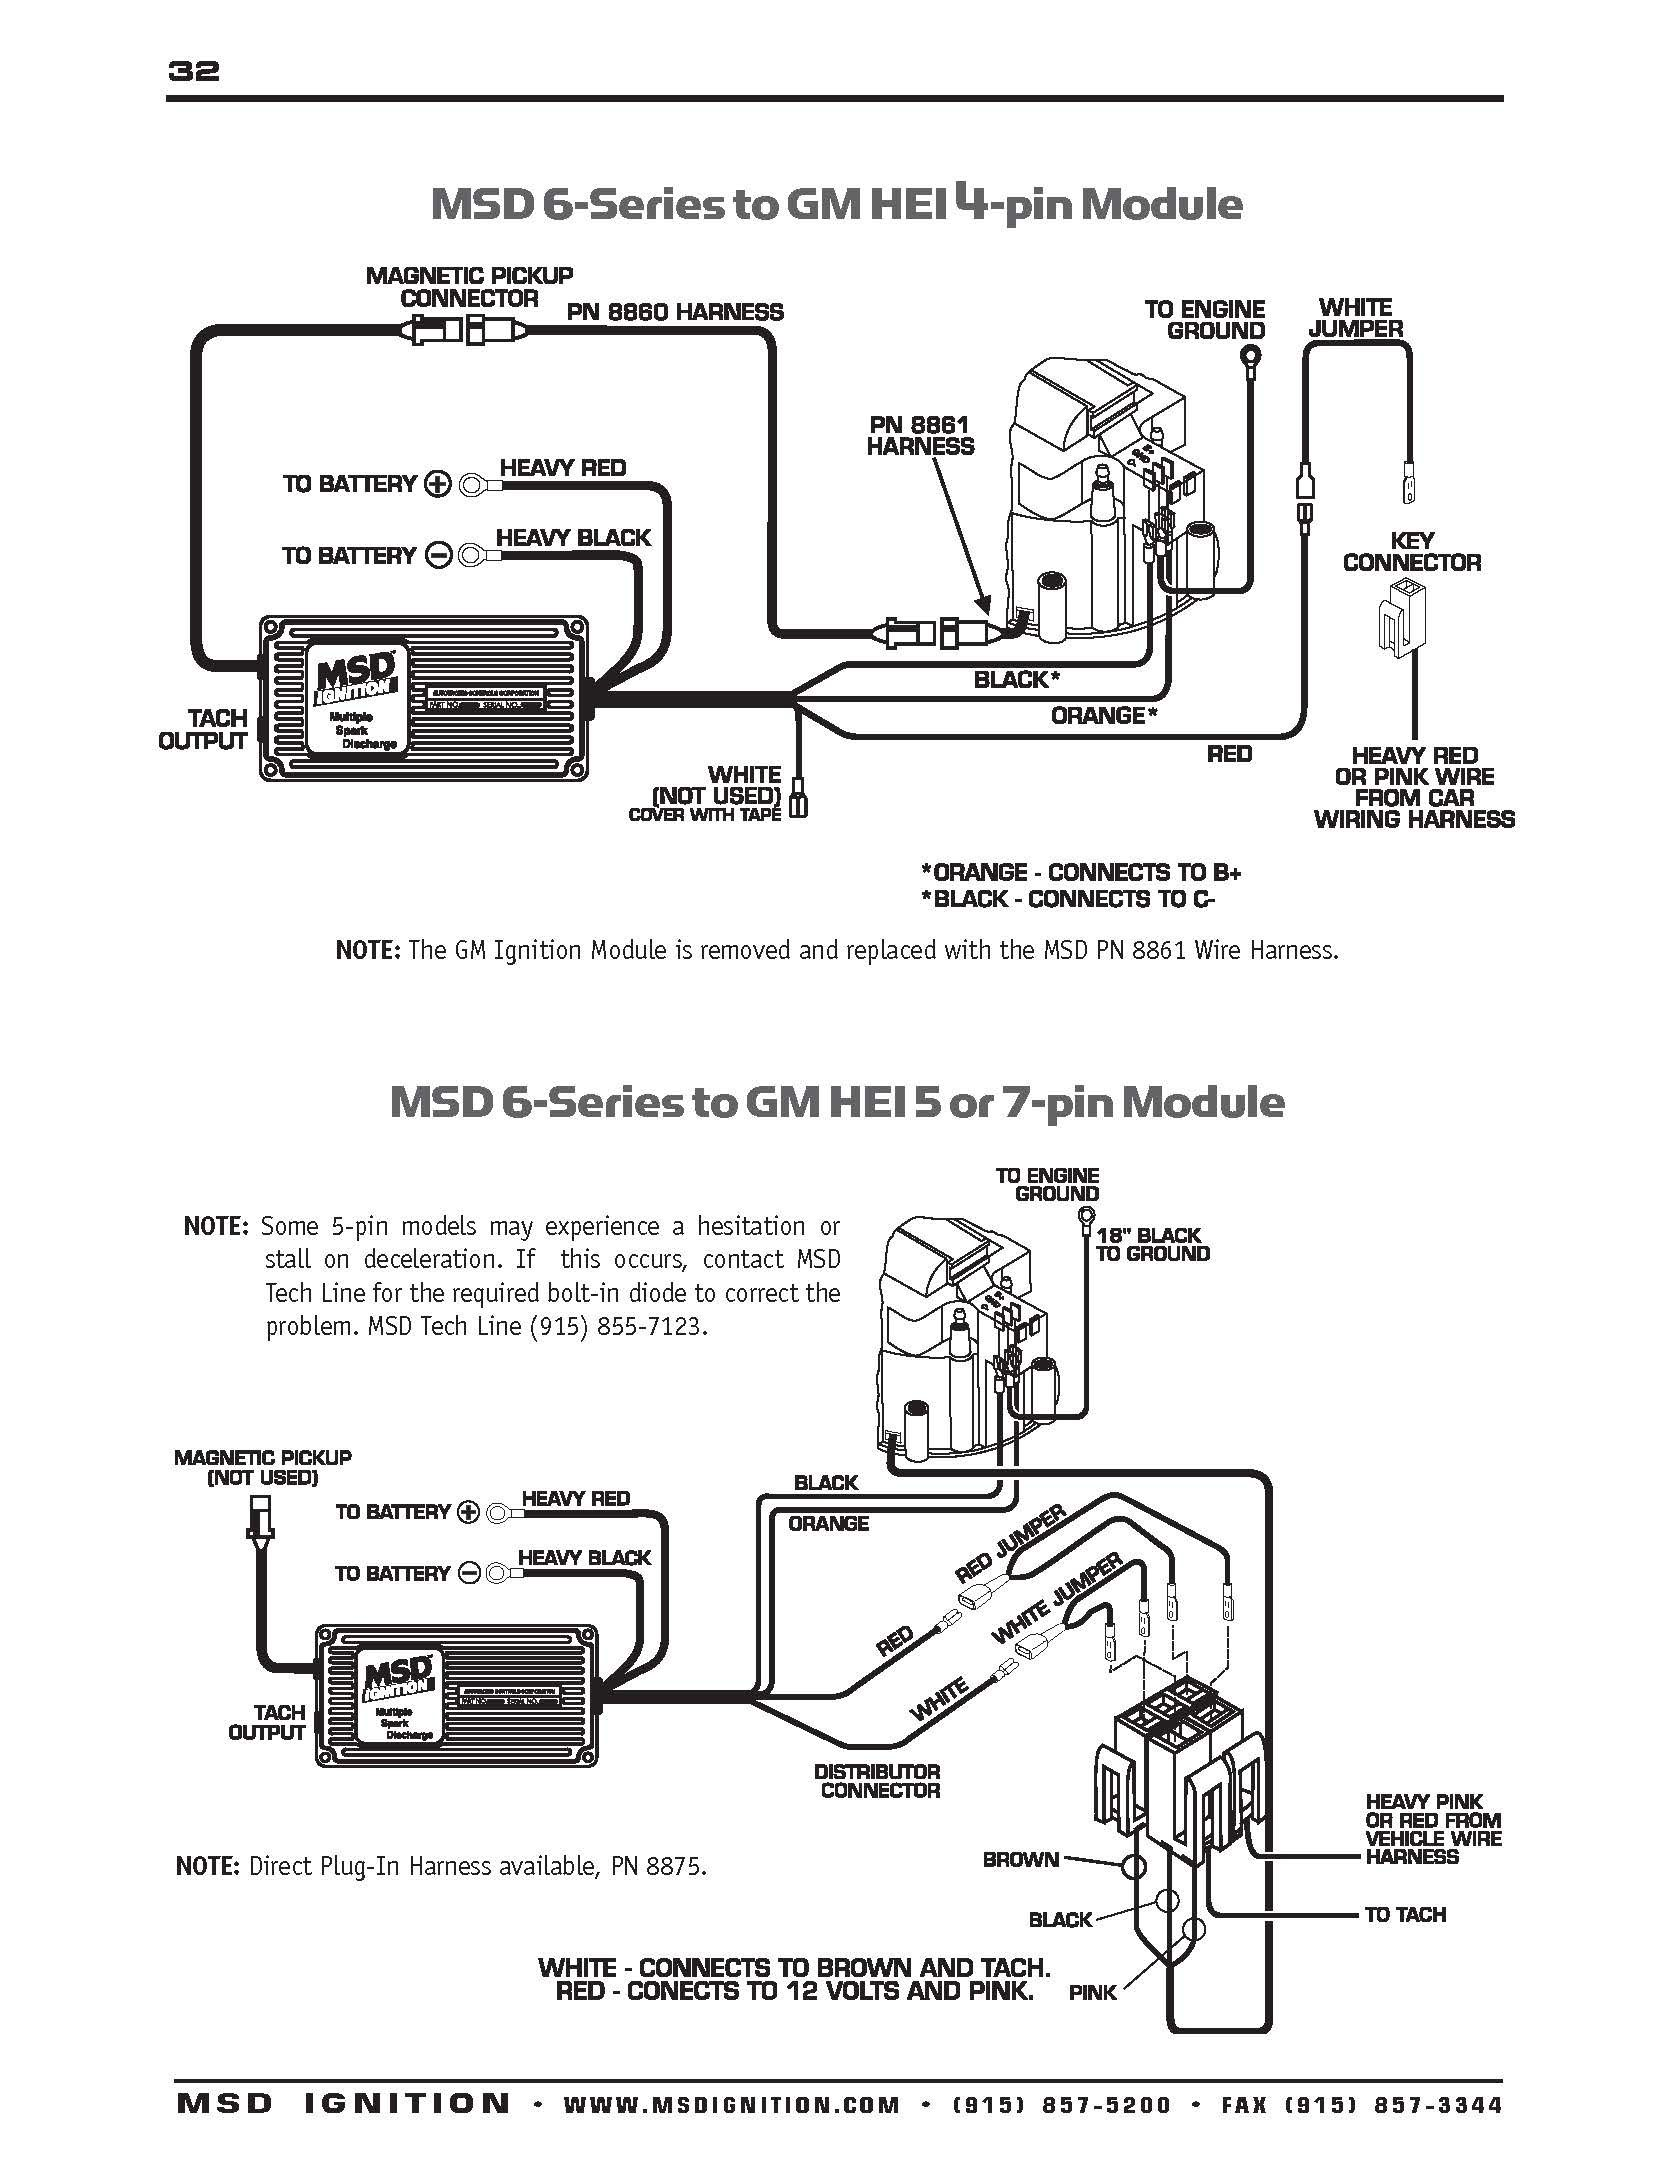 Ignition Wire Diagram - Wiring Diagram Show on msd wiring diagram trigger points, msd promag wiring-diagram, msd wiring diagram for a jeep, msd pn 8950, msd rpm activated switch wiring diagram,